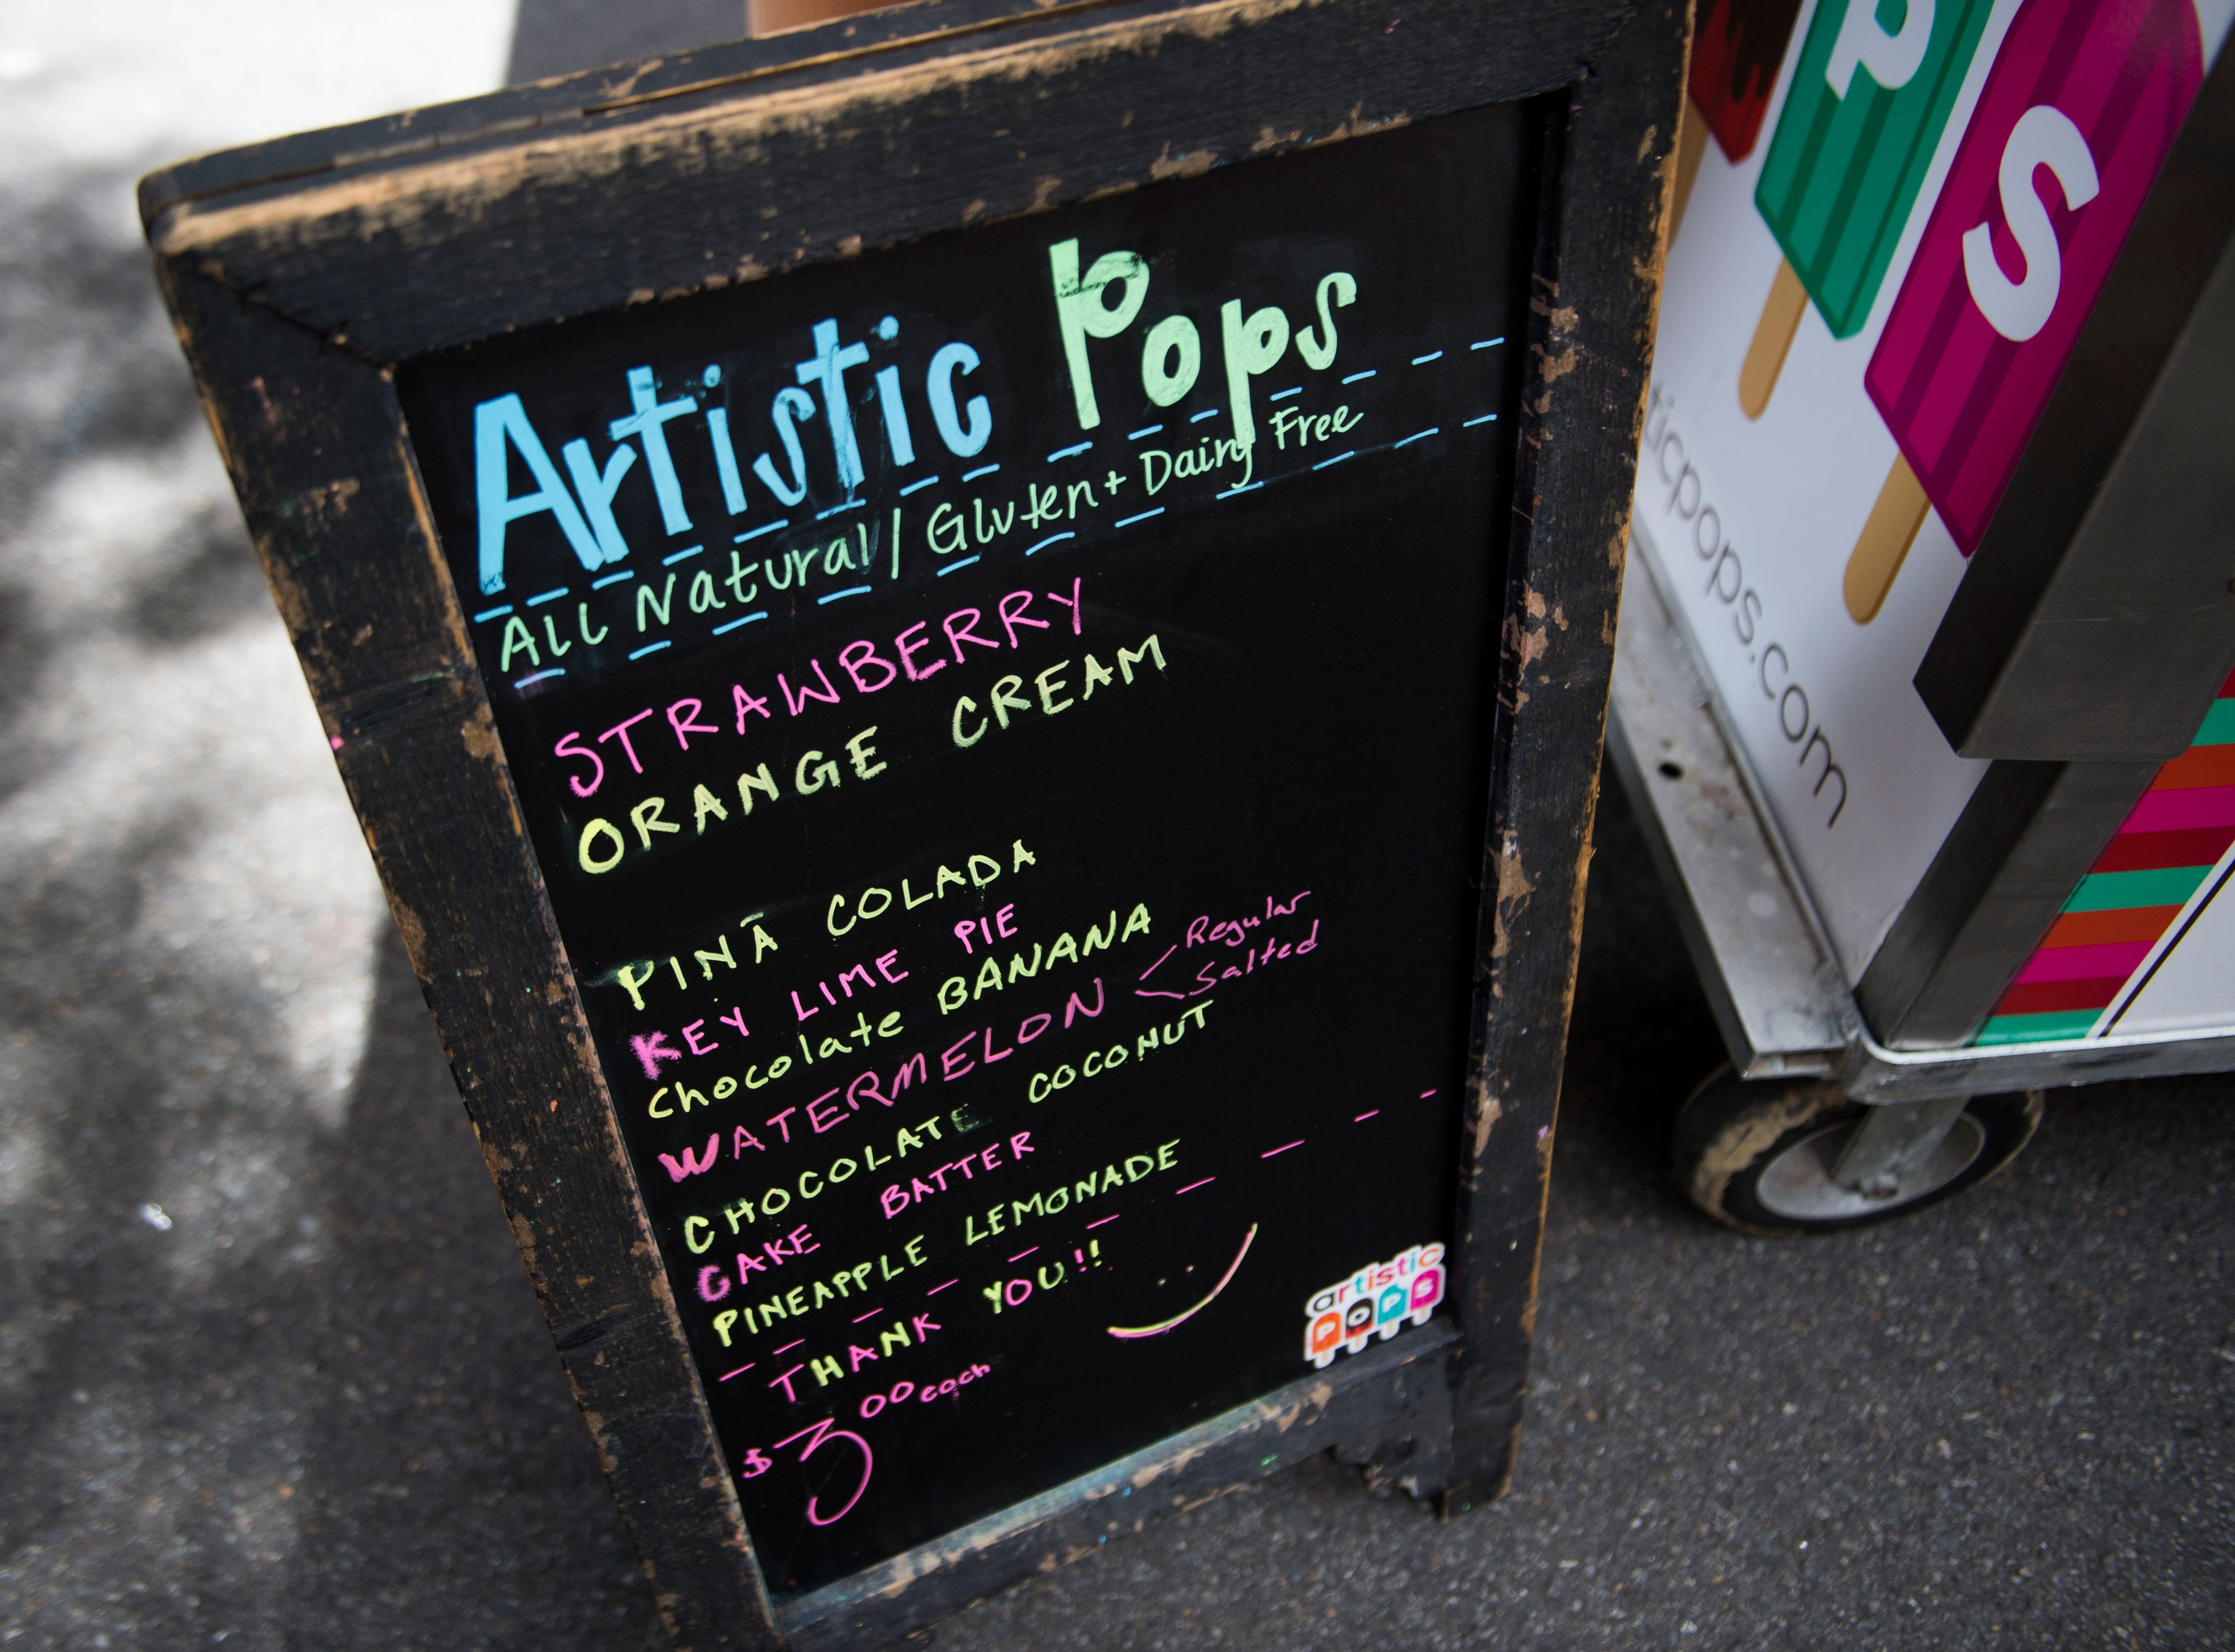 A sign lists the flavors of Artistic Pops at the farmers market in downtown Knoxville Saturday, Aug. 4, 2018. Artistic Pops are gluten free, nut free, and dairy free popsicles.